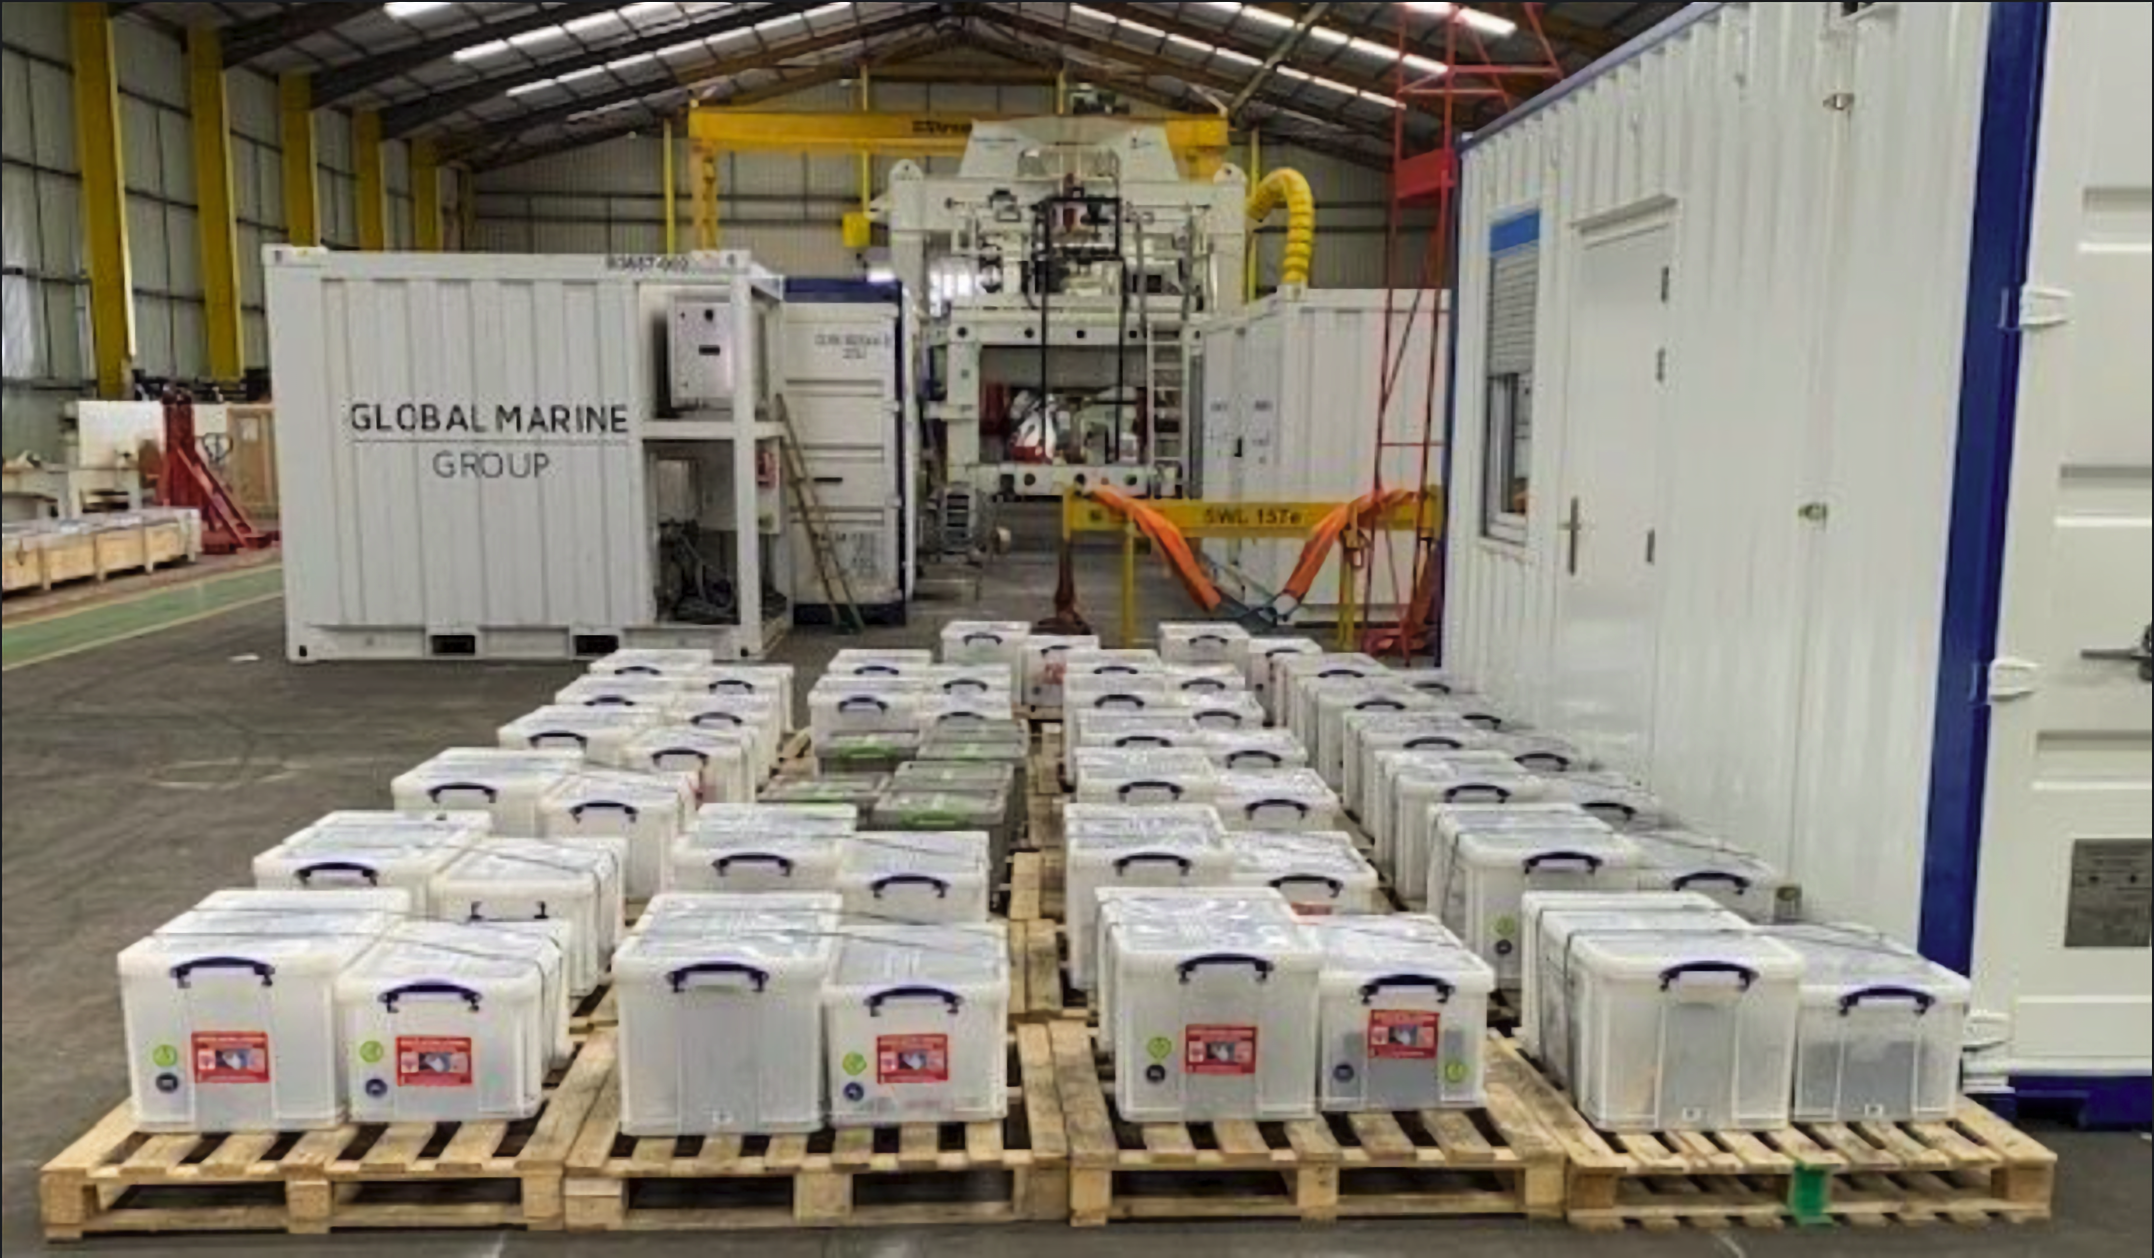 Successful shipment of components to Vattenfall